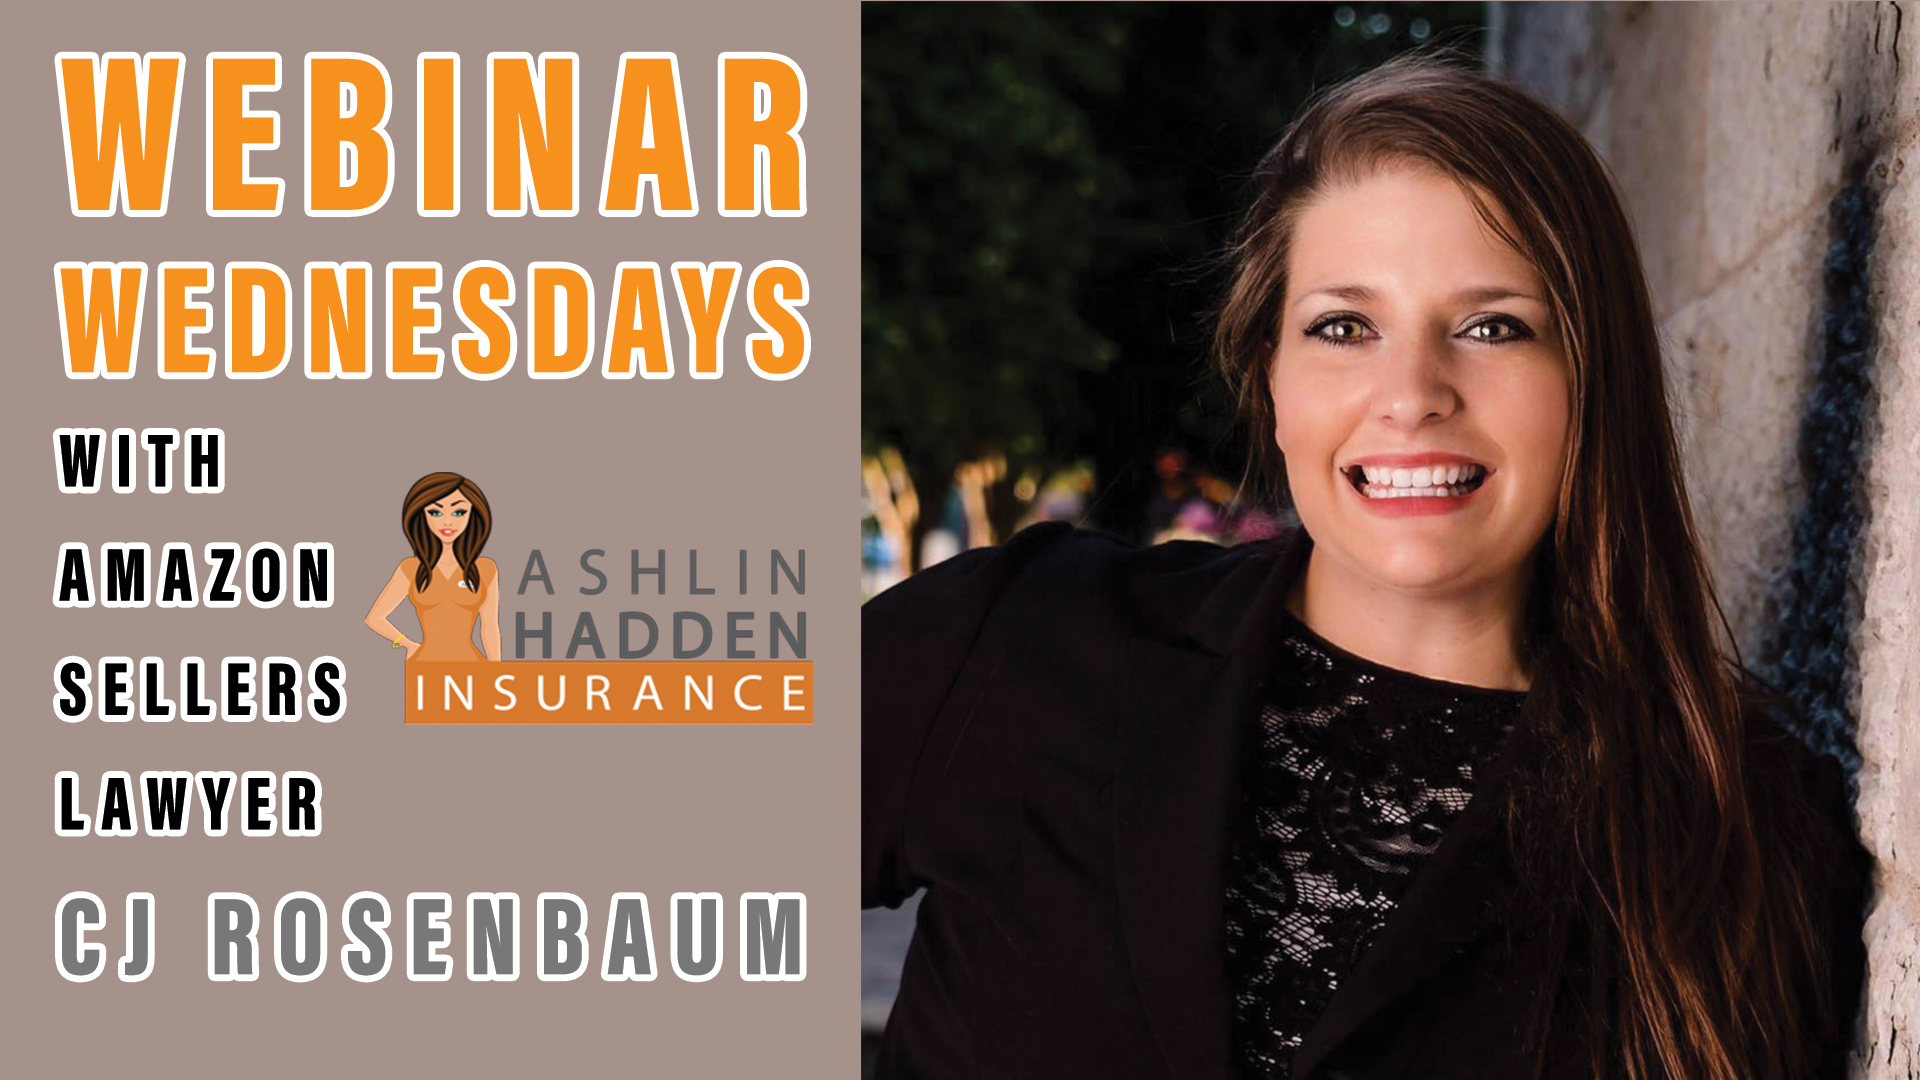 Ashlin Hadden Insurance for Amazon Sellers